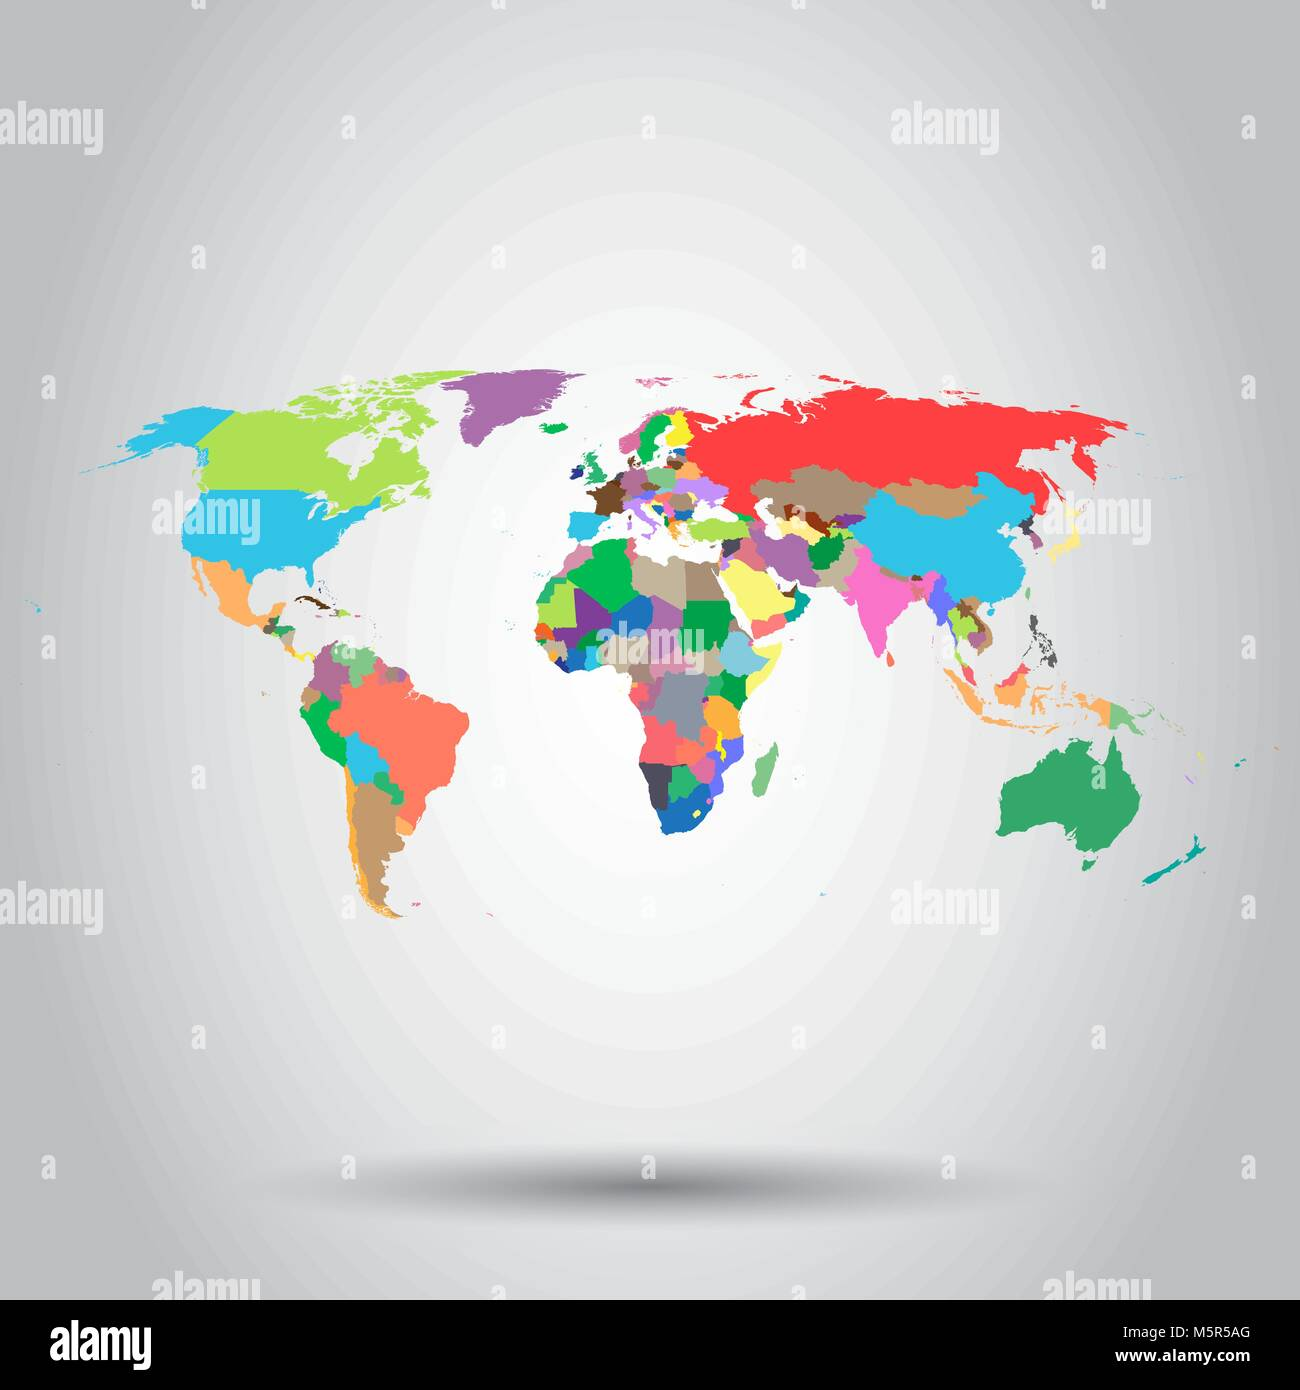 Detailed vector map asia pacific stock photos detailed vector map world map colorful political icon business concept world map pictogram vector illustration on white gumiabroncs Image collections